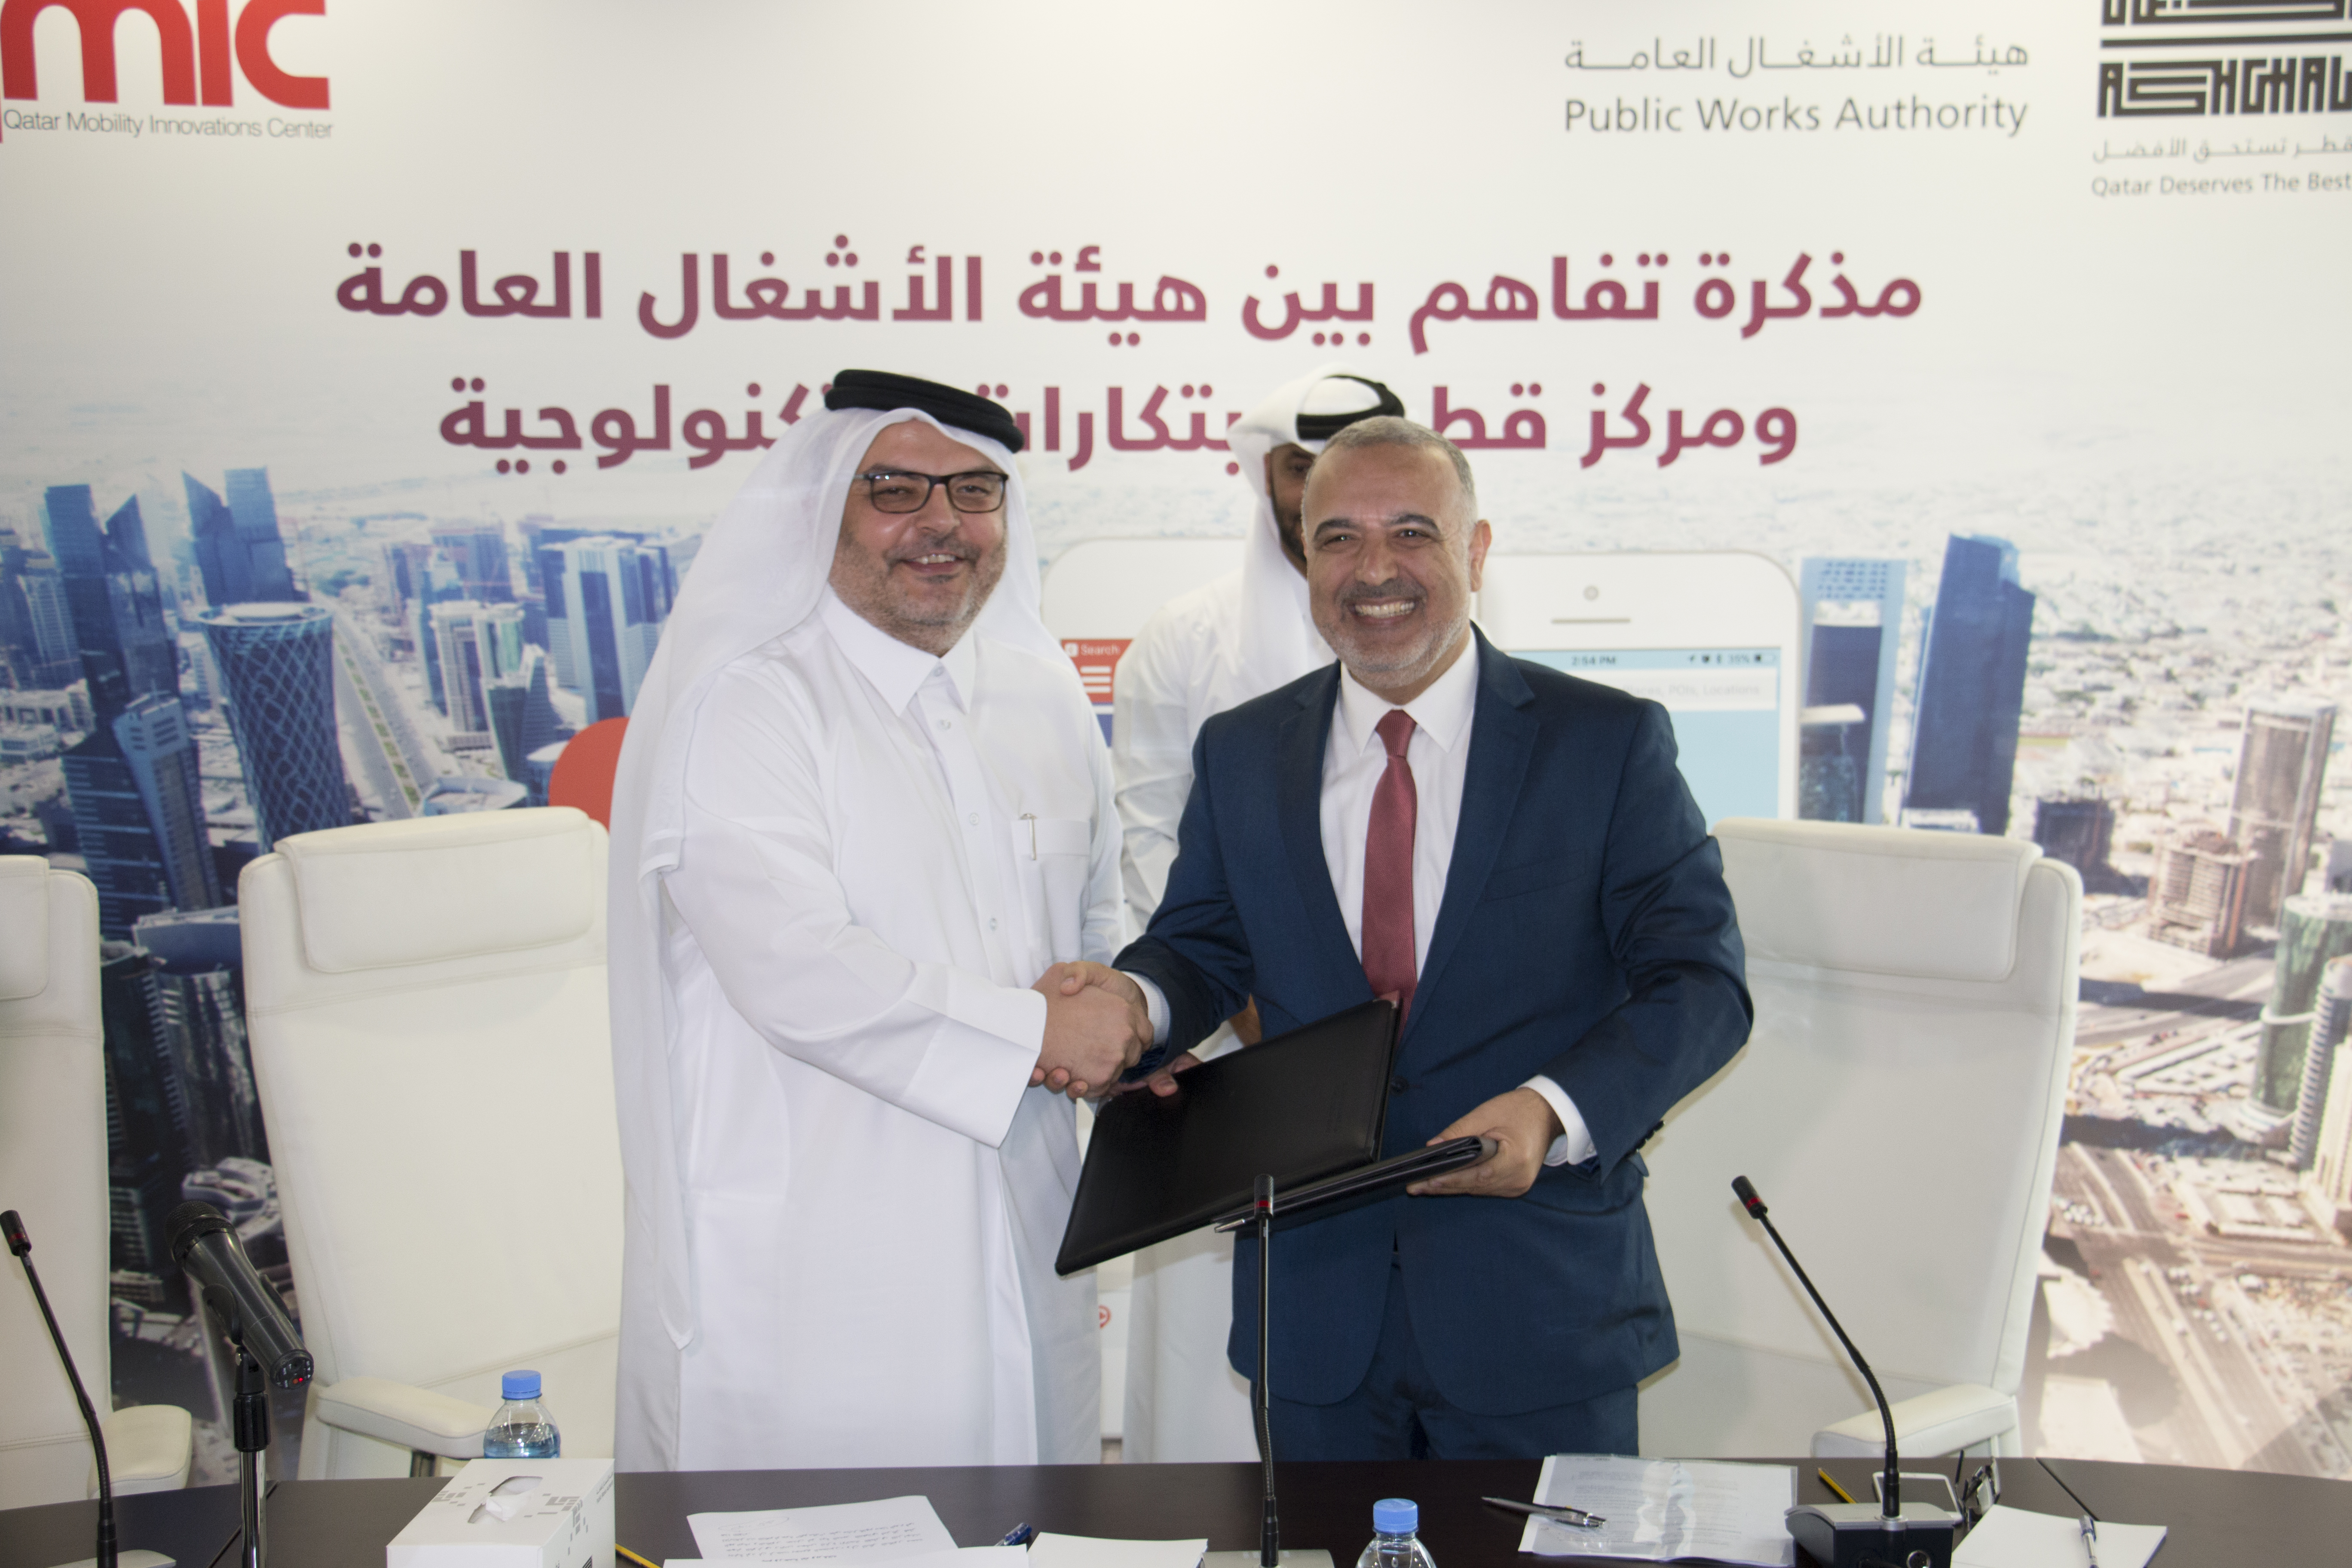 The Public Works Authority 'Ashghal' and Qatar Mobility Innovations Center (QMIC) sign MoU for Cooperation through Wain Application